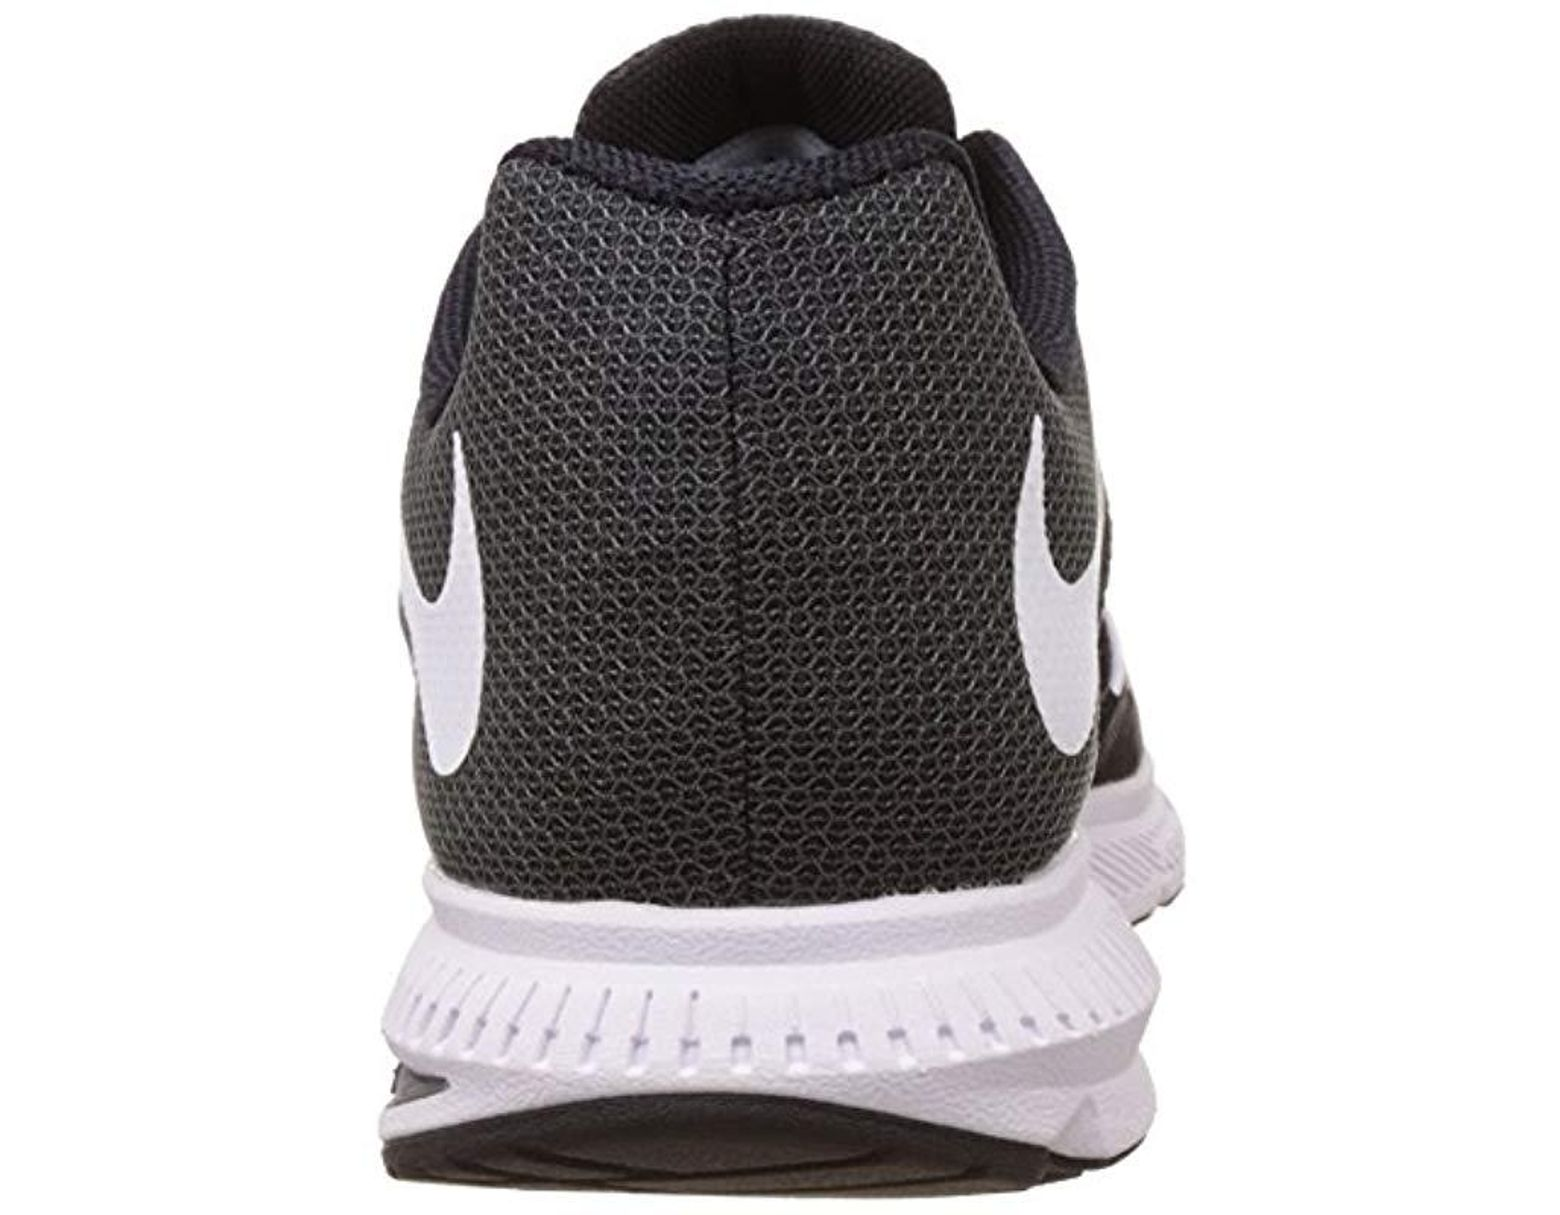 a0bff4da447d8 Nike Zoom Winflo 3 Running Shoes in Black for Men - Lyst